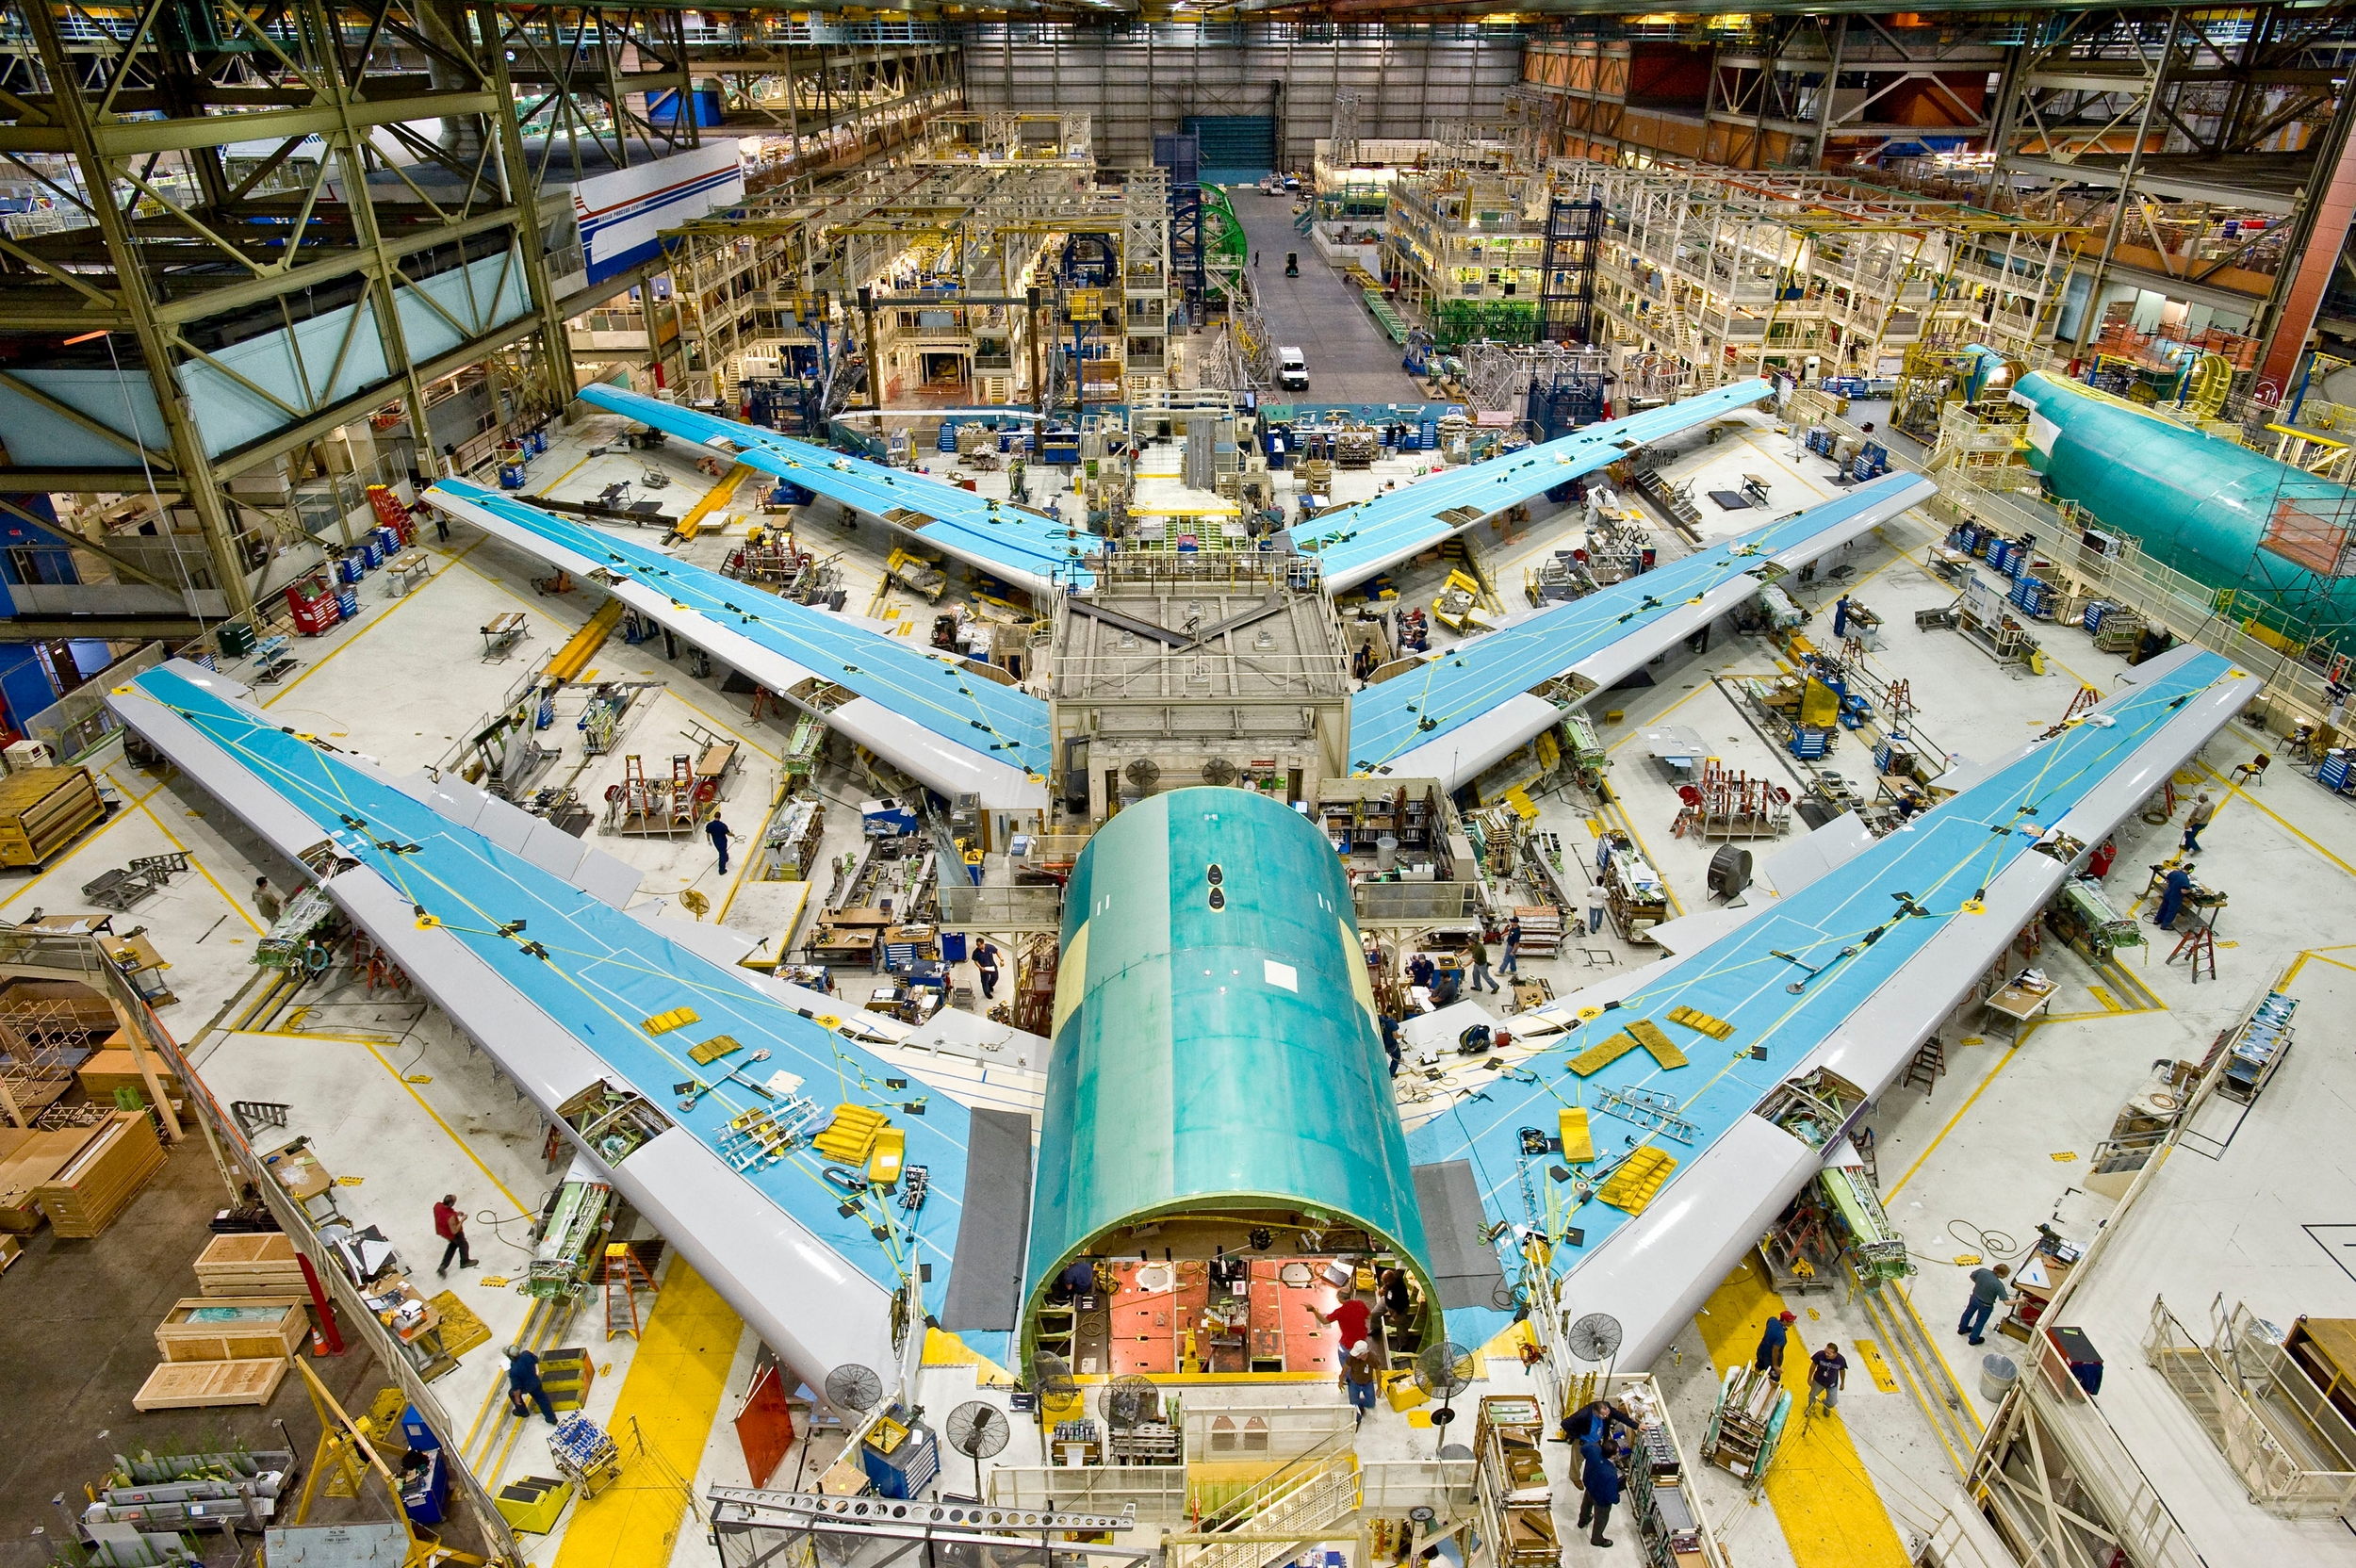 Boeing 747-8 wing-fuselage sections during final assembly